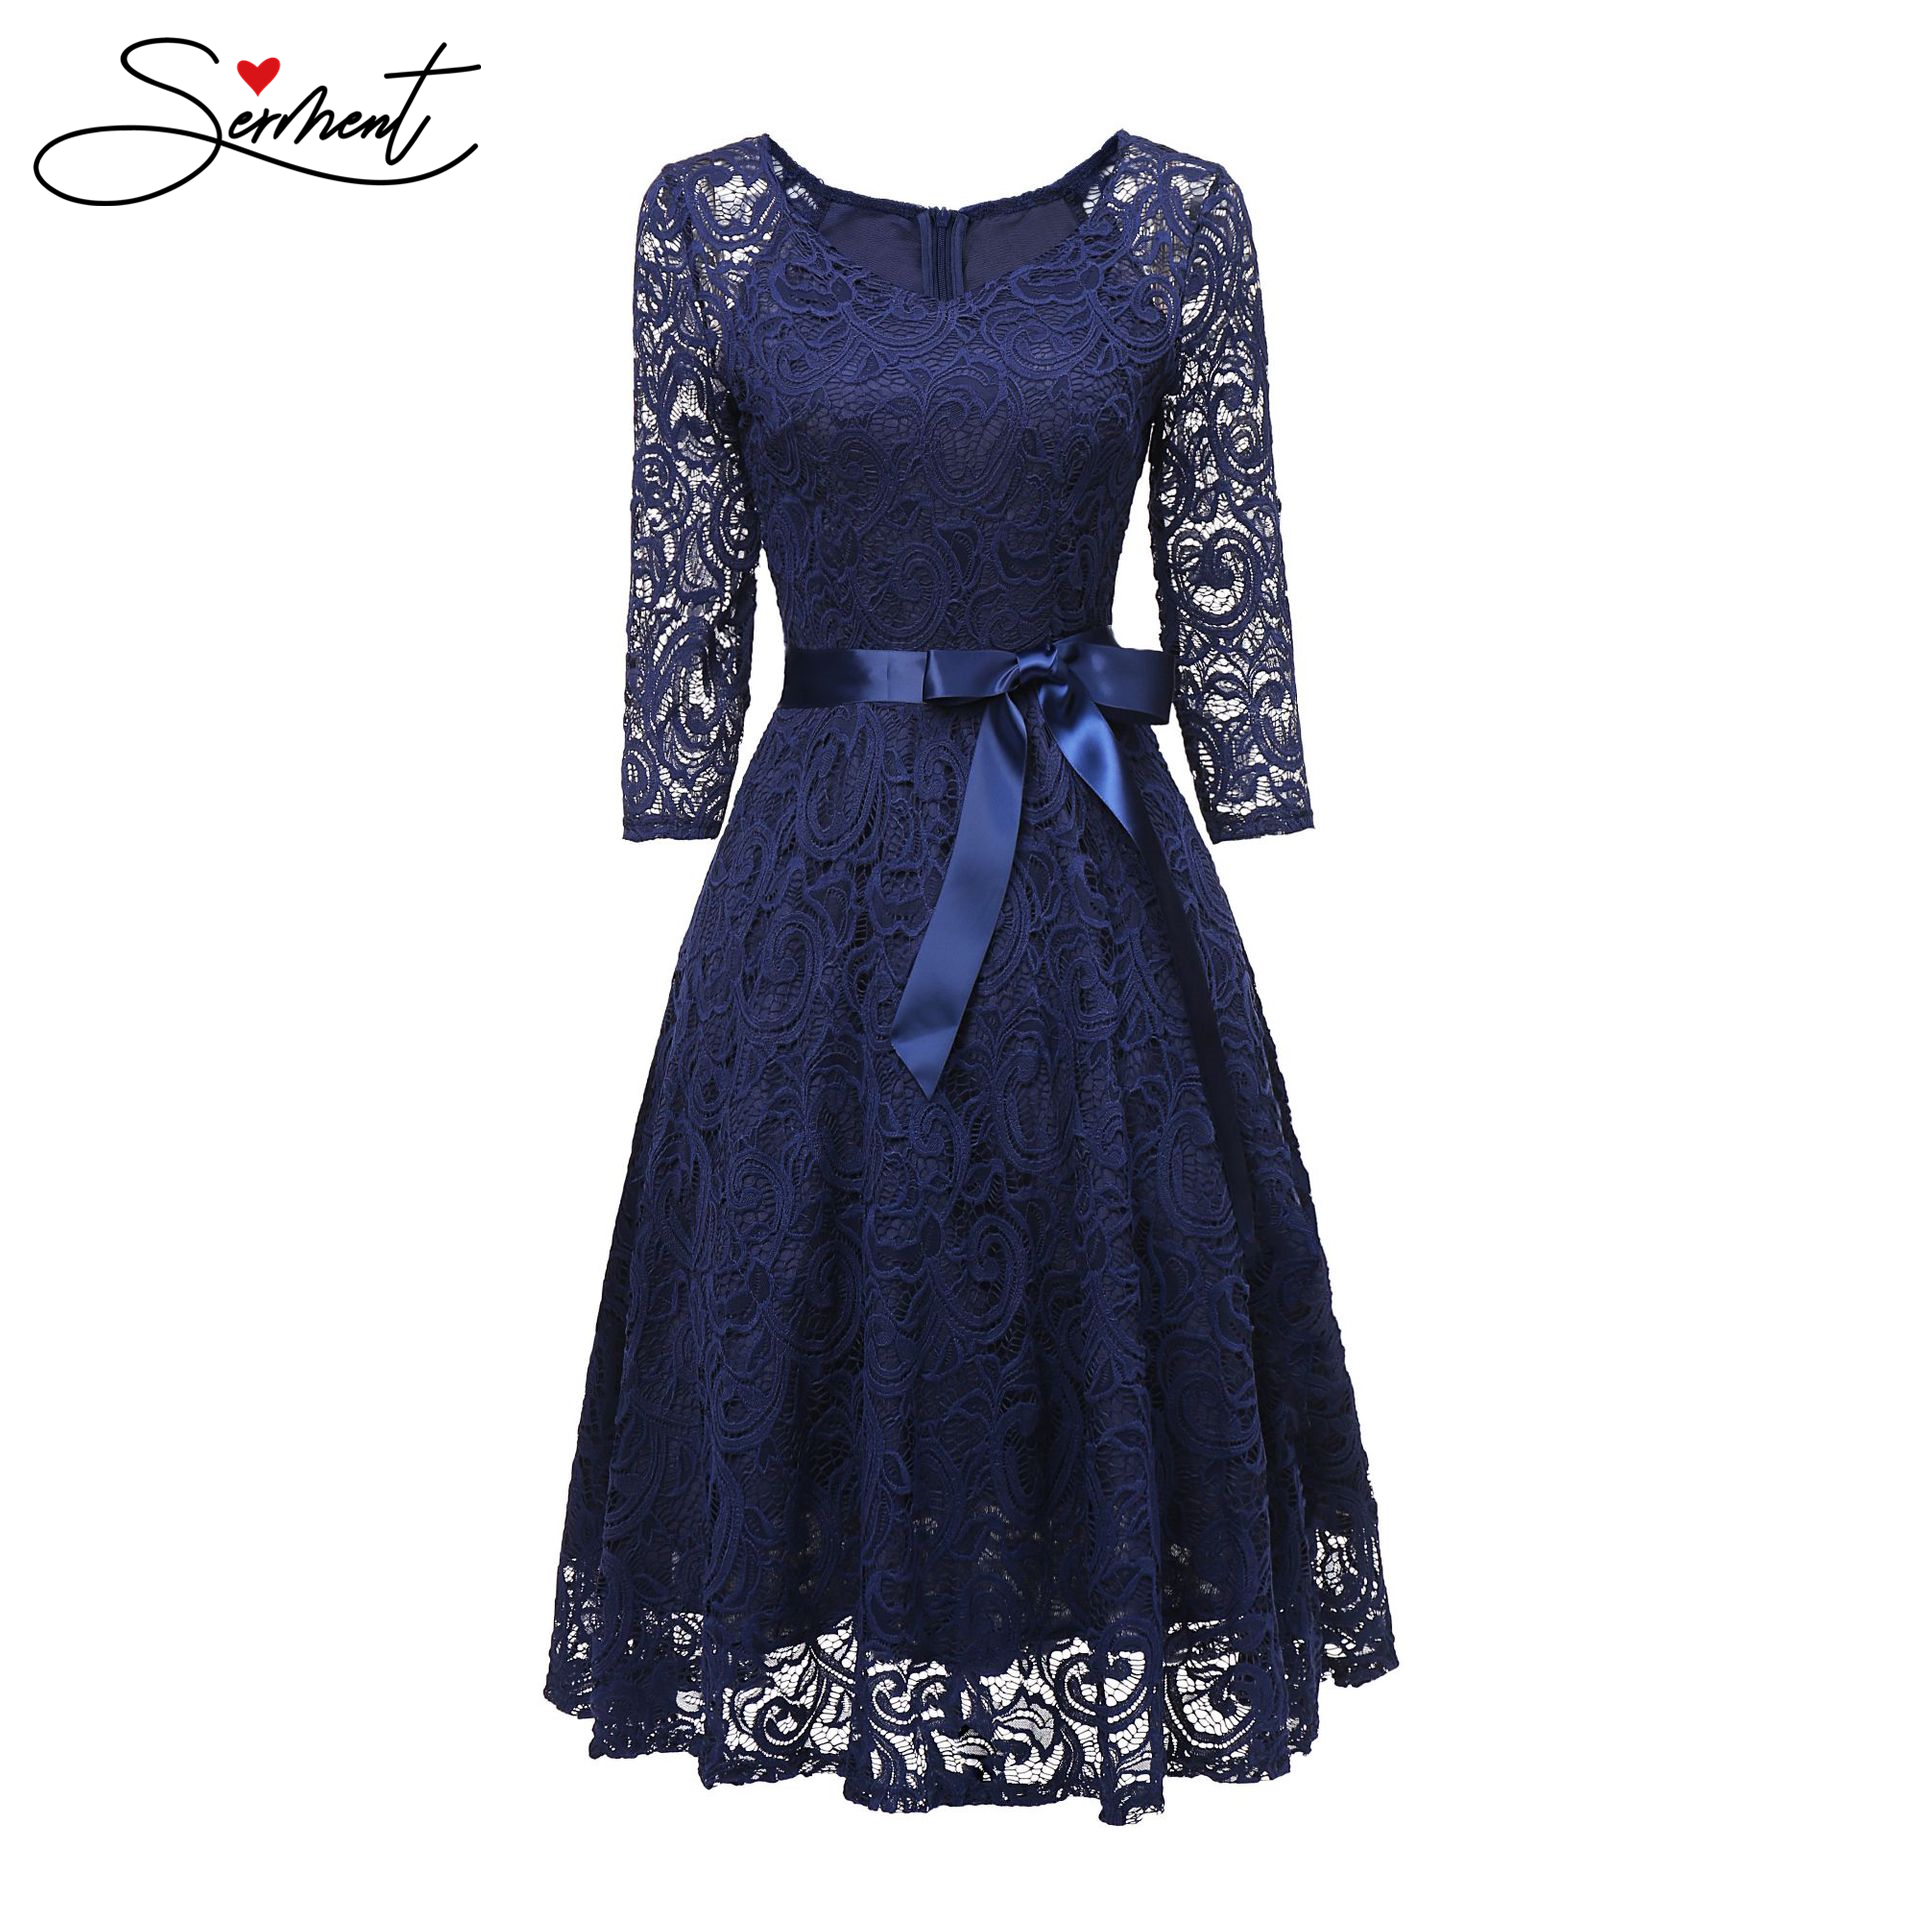 SERMENT Simple 2019 Autumn New European And American Women's Round Neck Long-sleeved Lace Evening Dress Suitable For Work